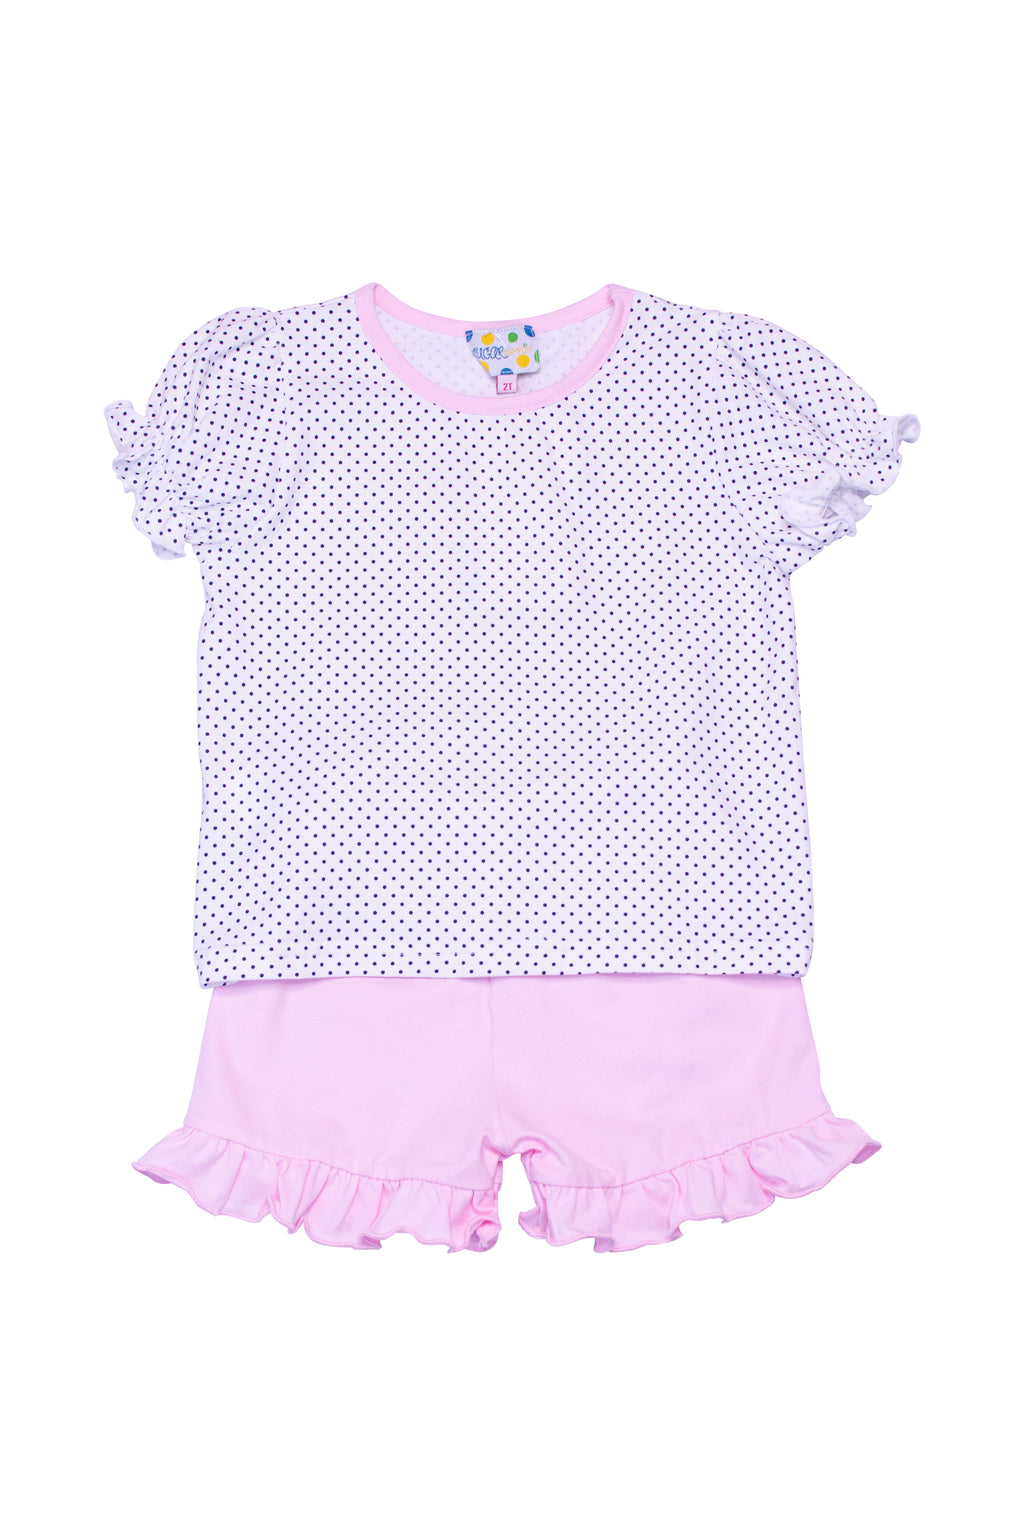 Girls Knit Navy Dot/Pink Shorts Set